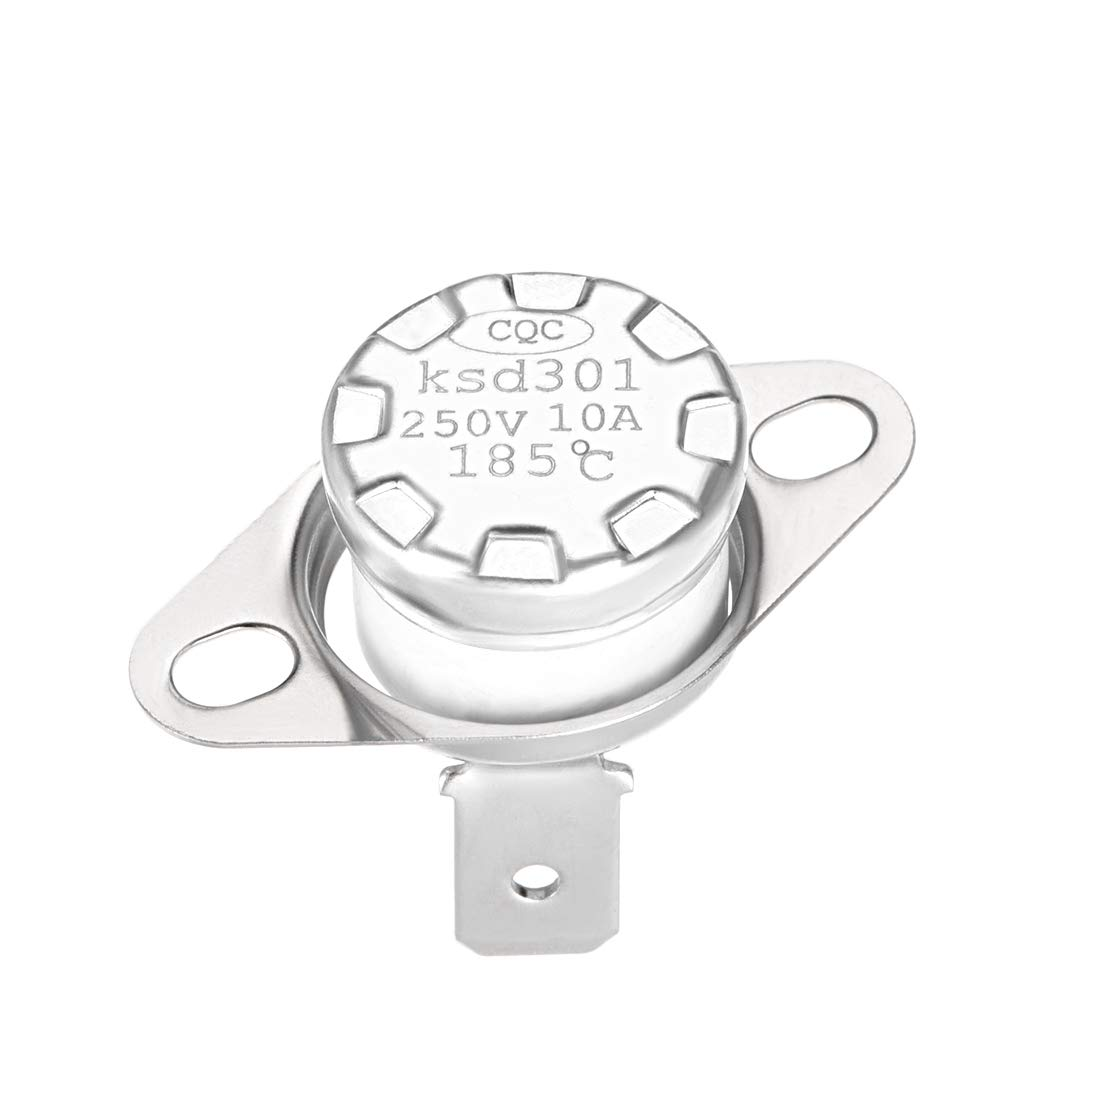 Adjust Snap Disc Limit Control Switch Microwave Thermostat Thermal Switch 165/°C 10A Normally Closed N.C 5pcs uxcell KSD301 Thermostat